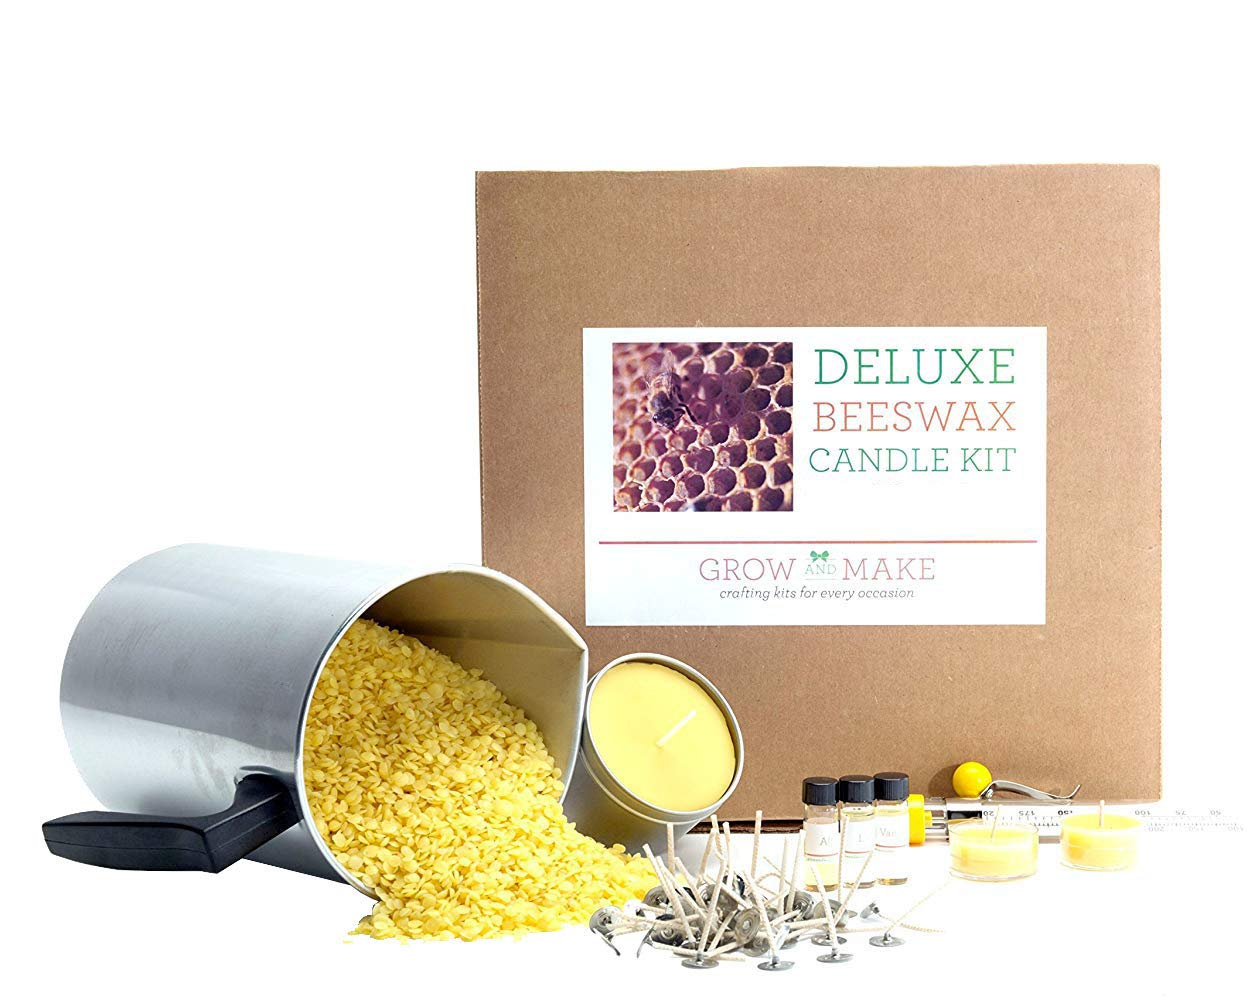 Grow and Make Deluxe Beeswax Candle Making Kit with Tin Containers - Make 6 of Your own Beeswax Candles at Home! by Grow and Make